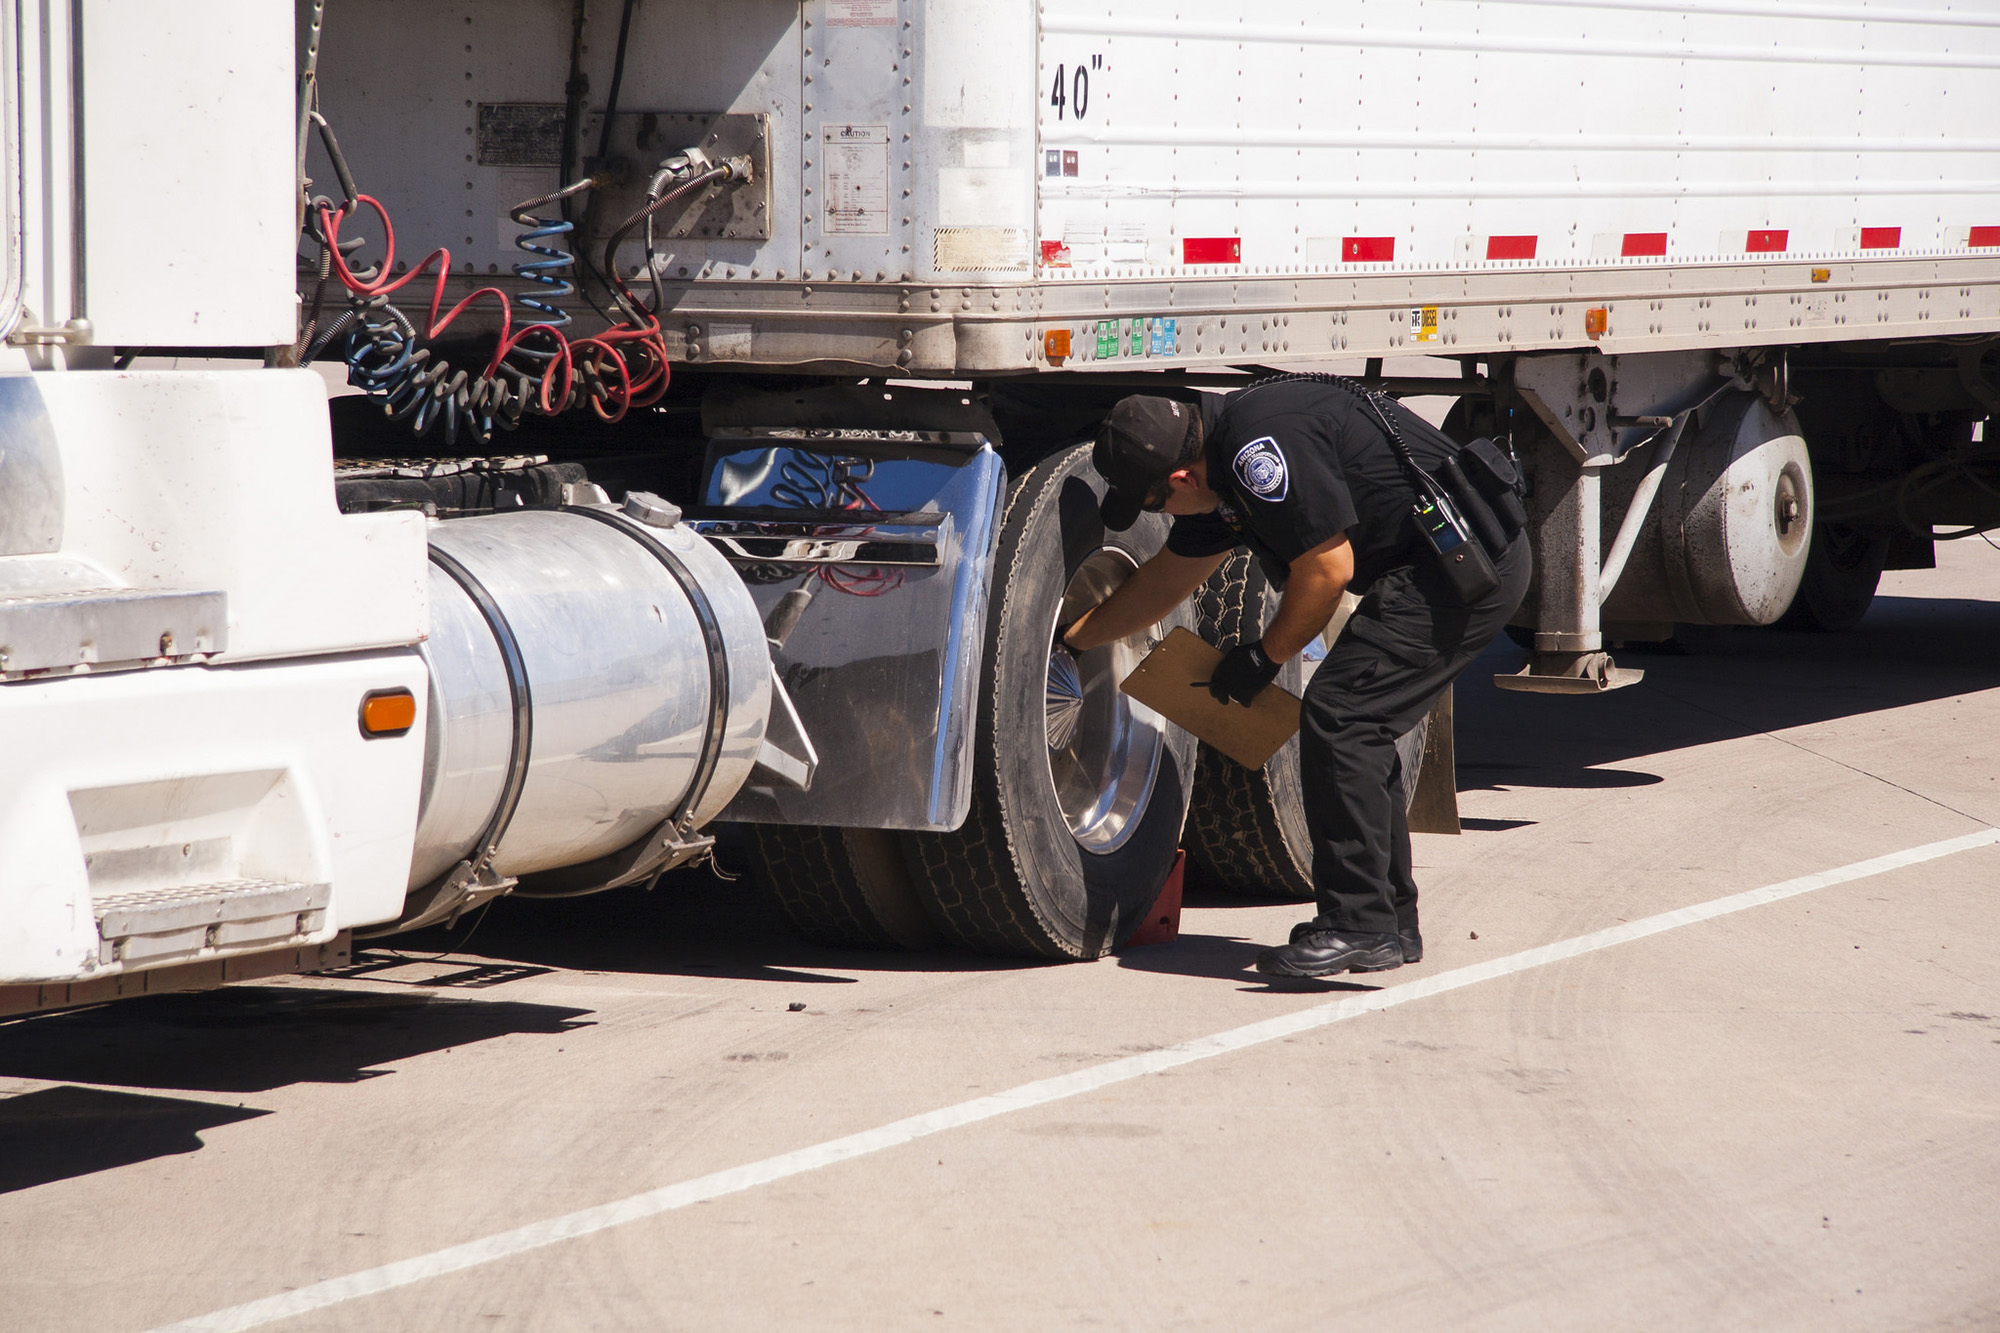 DOT inspectors throughout the US, Canada and Mexico will be inspecting nearly 17 trucks or buses, on average, every minute during this year's International Roadcheck.